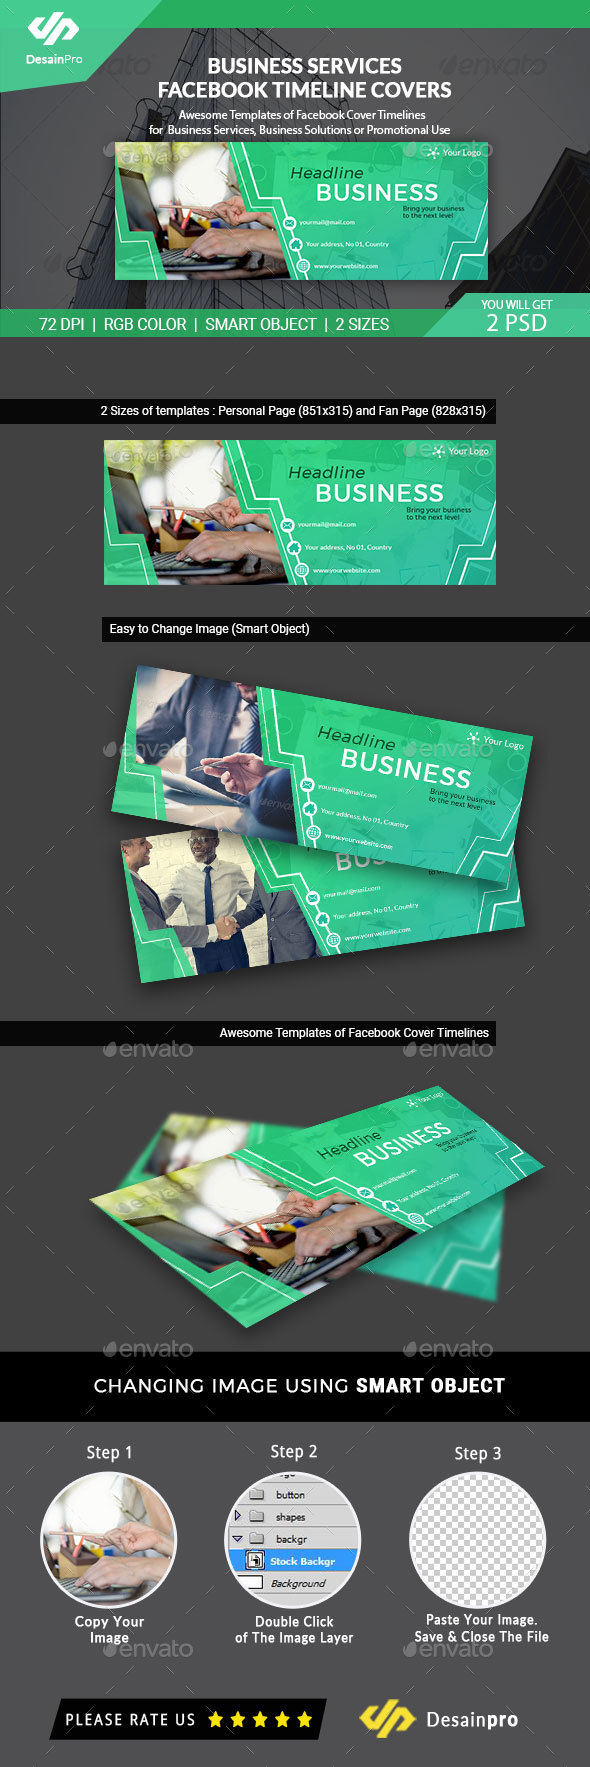 Business Services Facebook Timeline Covers - AR - Facebook Timeline Covers Social Media